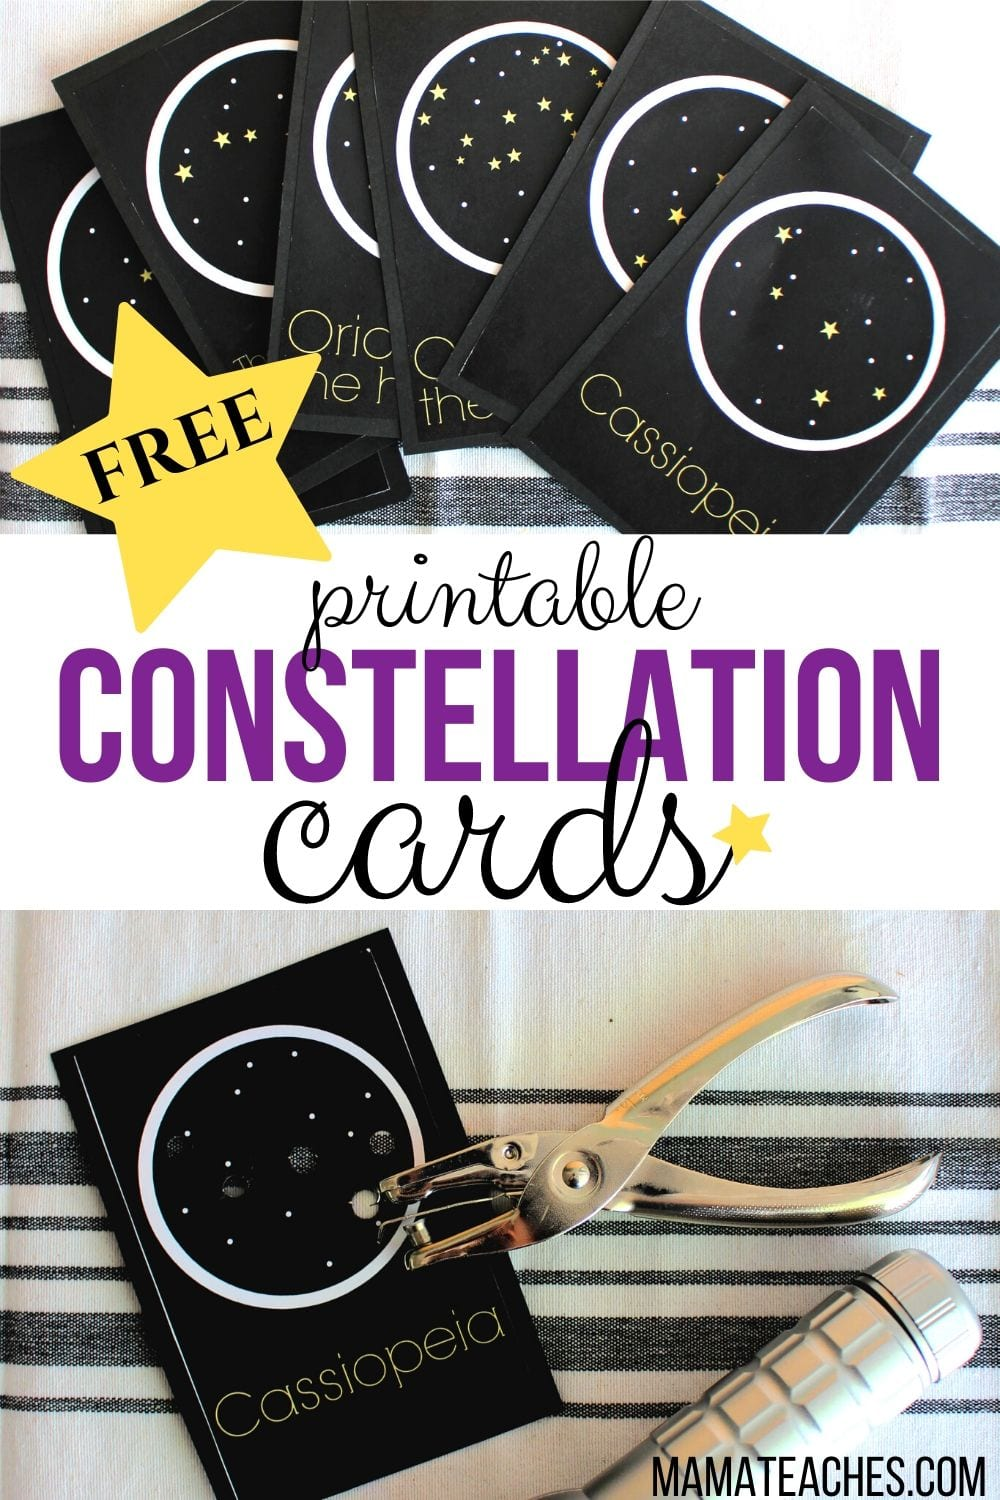 Free Printable Constellation Cards to Teach Constellations for Kids - MamaTeaches.com